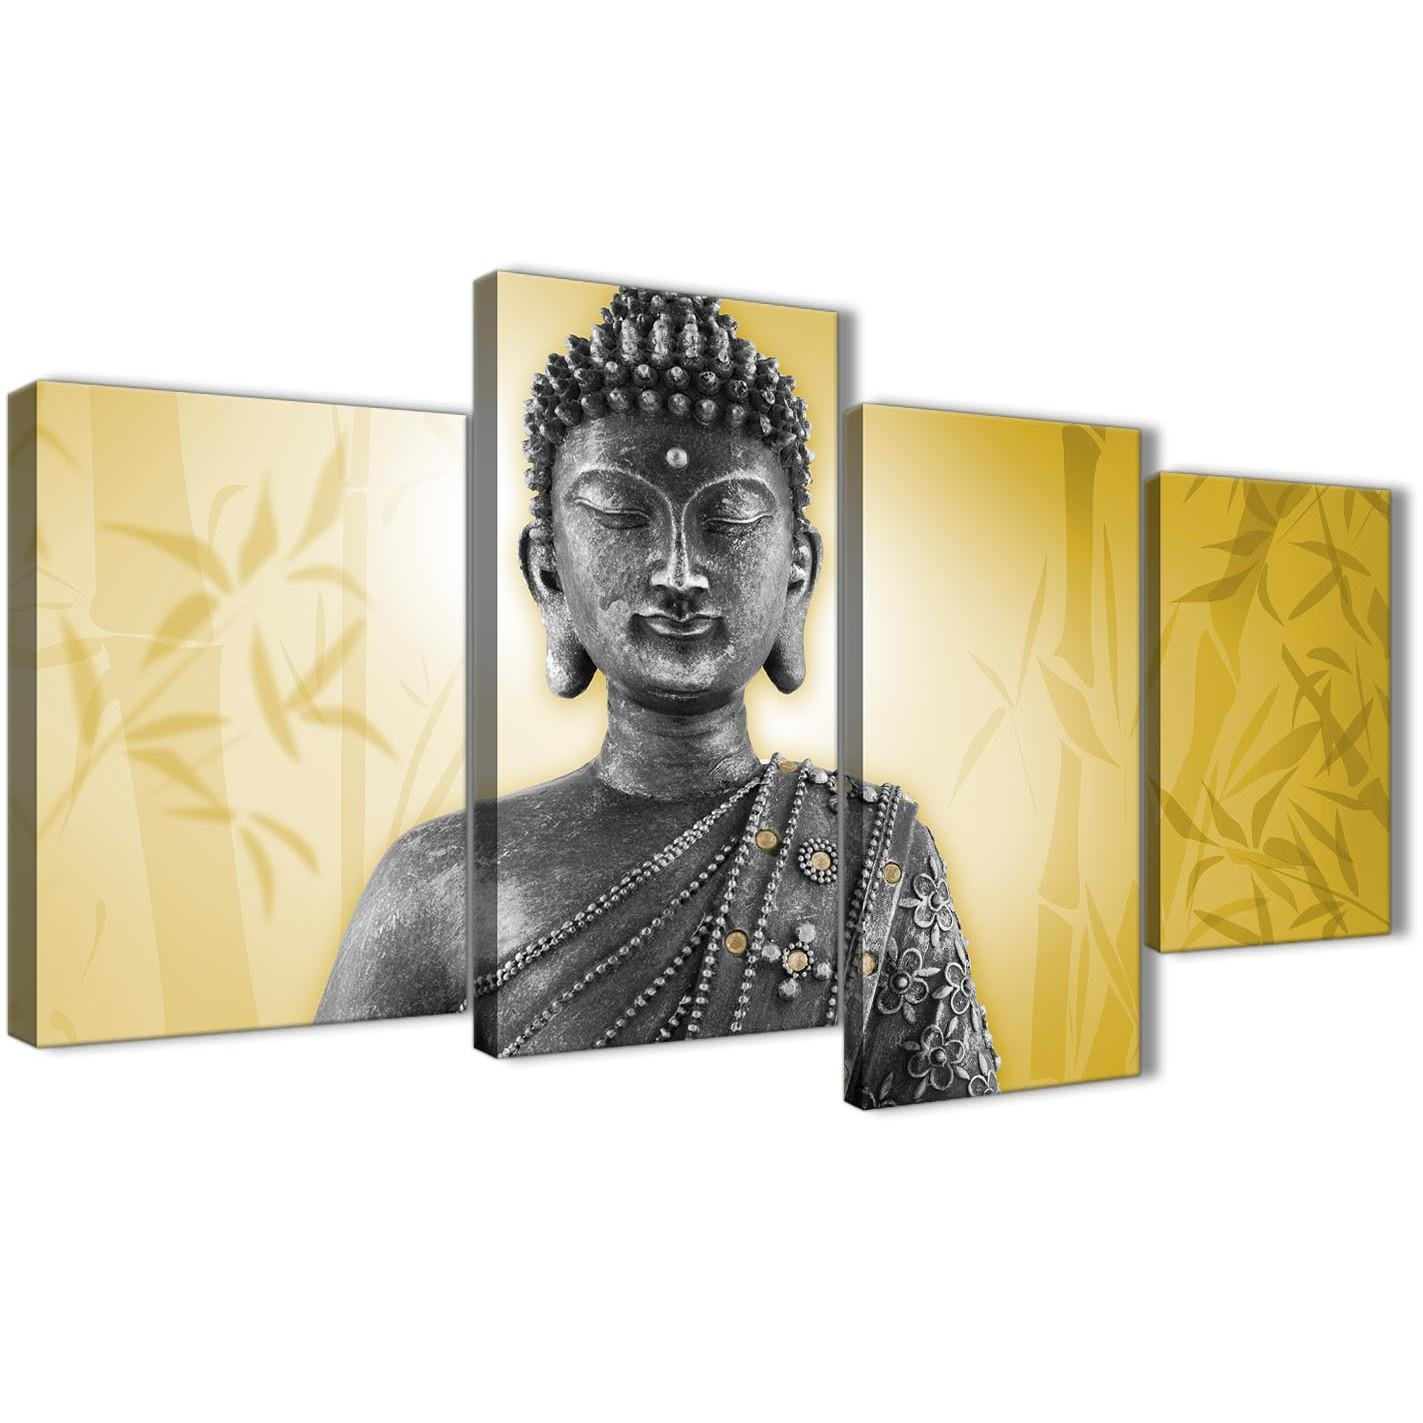 Large Mustard Yellow And Grey Silver Canvas Art Print Of Buddha With Regard To Silver Buddha Wall Art (View 17 of 20)